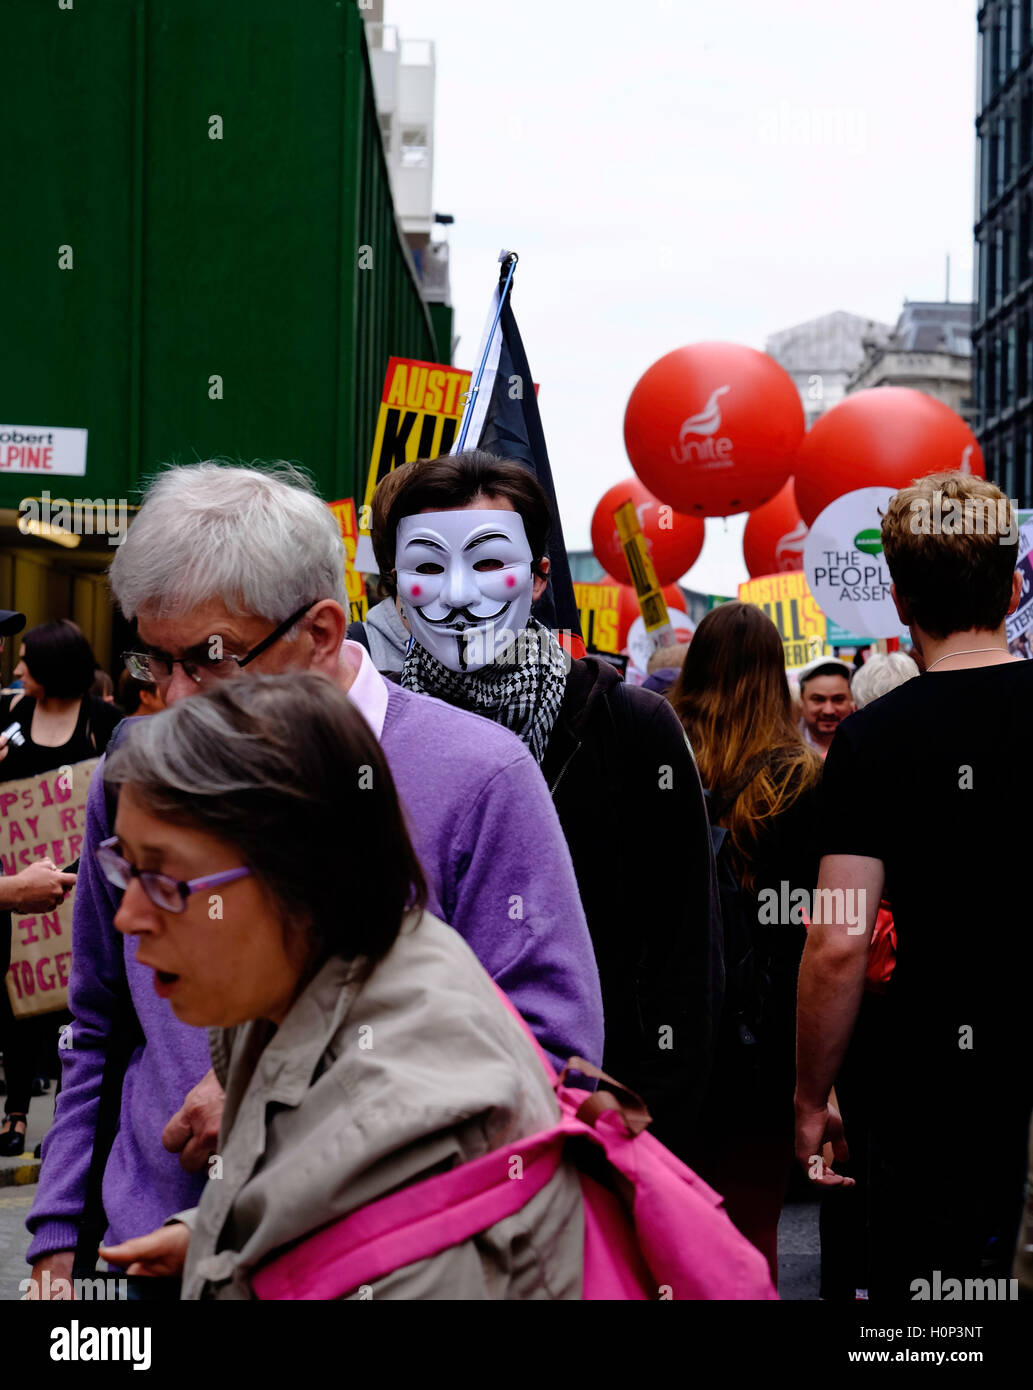 Protestor wearing Guy Fawkes mask at anti-austerity protest in London, England - Stock Image